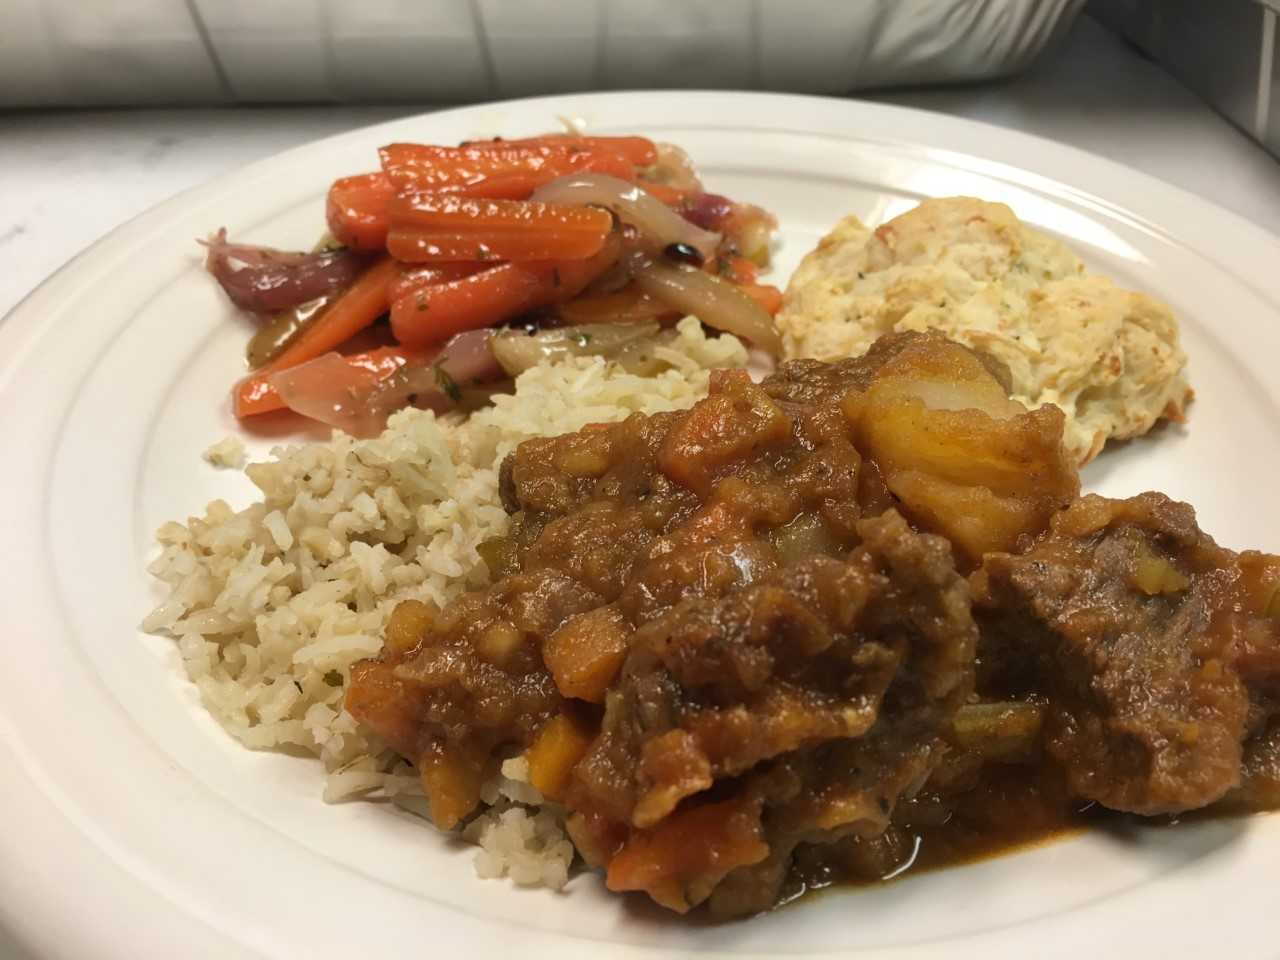 Gooder Meal - Beef Stew and Jasmine Rice Carrot and Rose Geranium Salad and Drop Biscuit